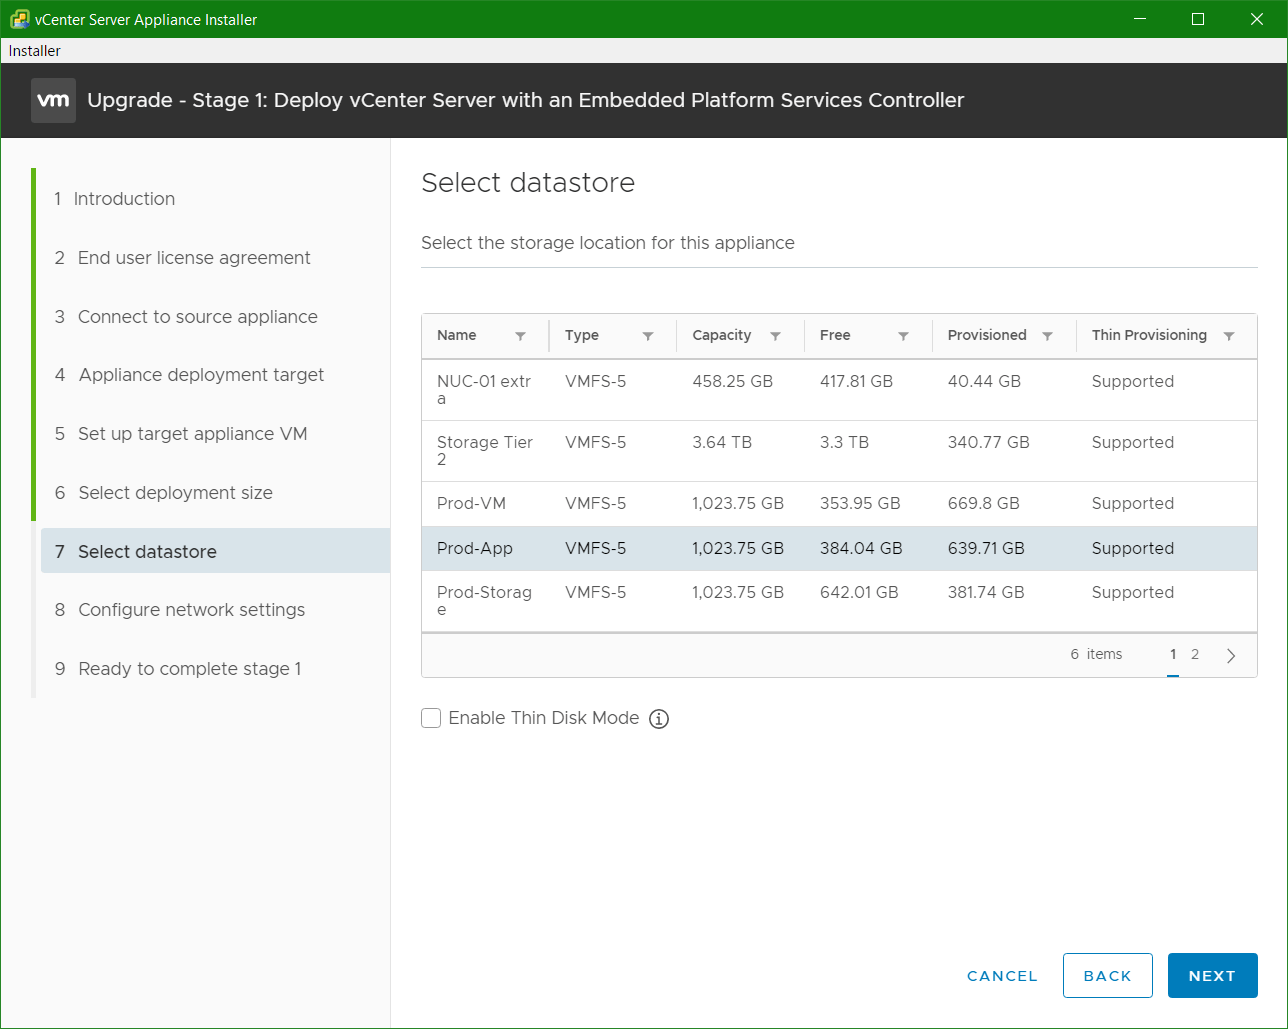 domalab.com VCSA upgrade stage 1 select datastore